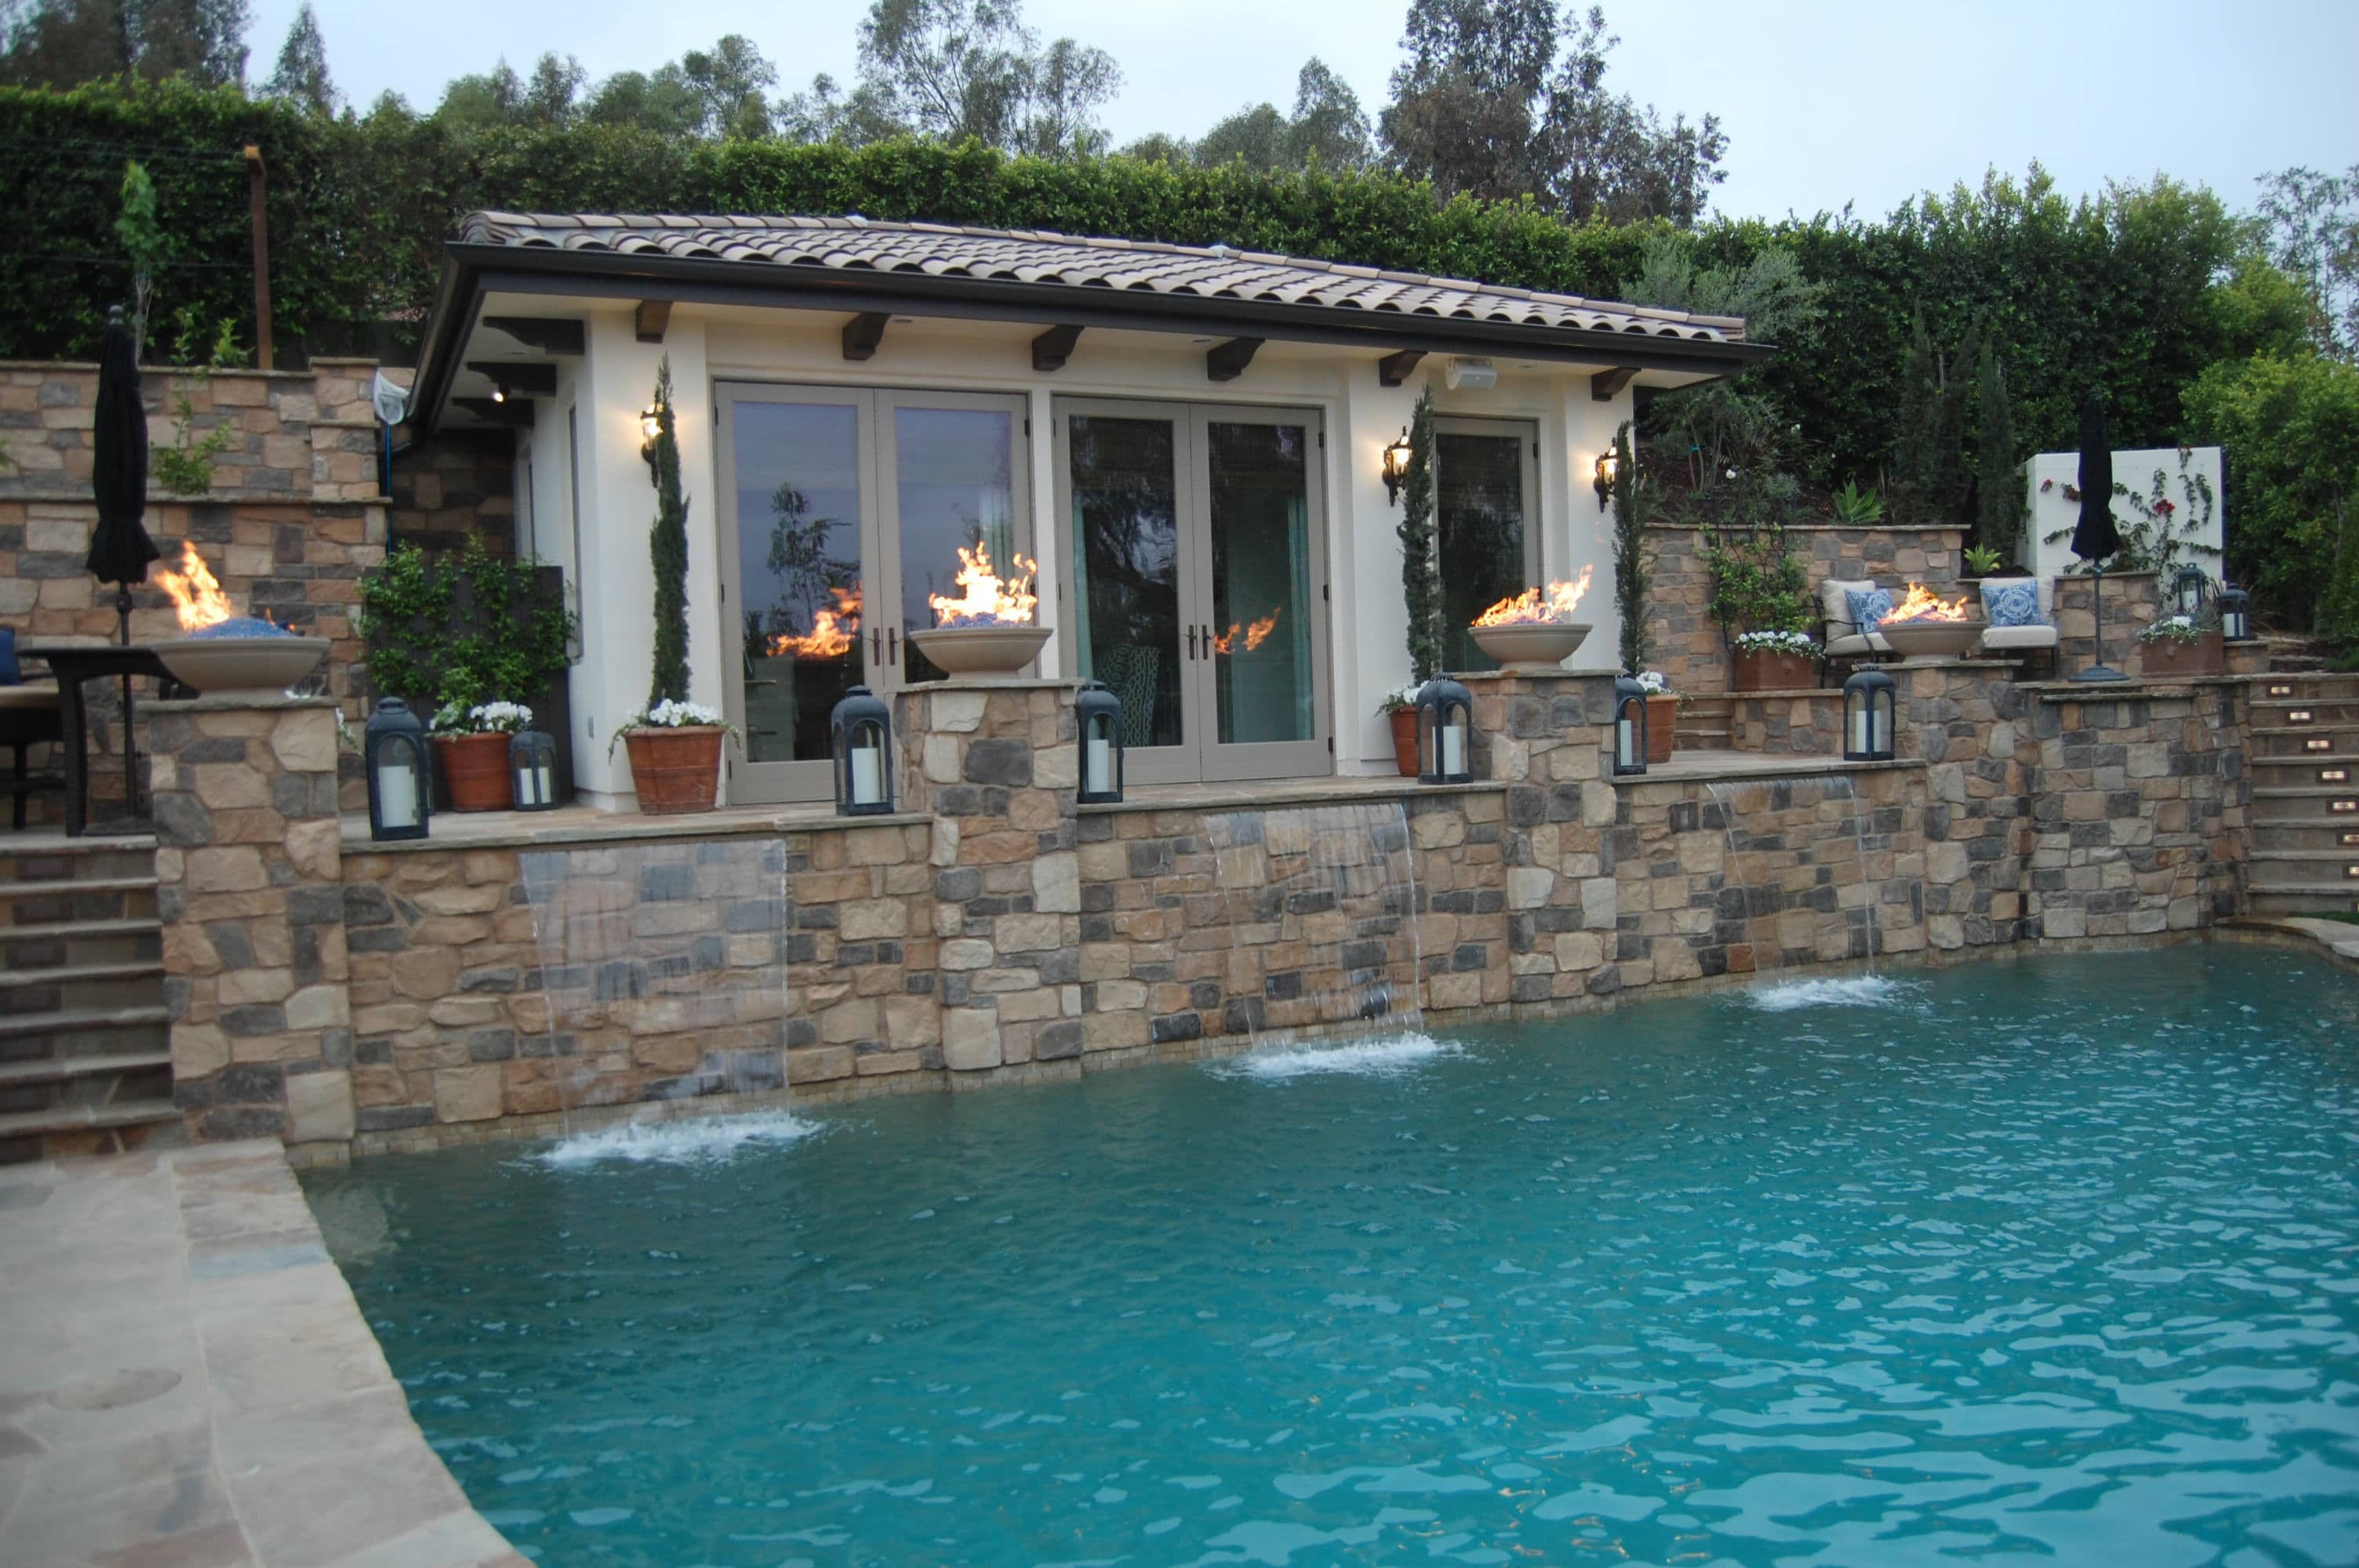 Celebrity House   Pool, Fire Bowls, Outdoor Living Room